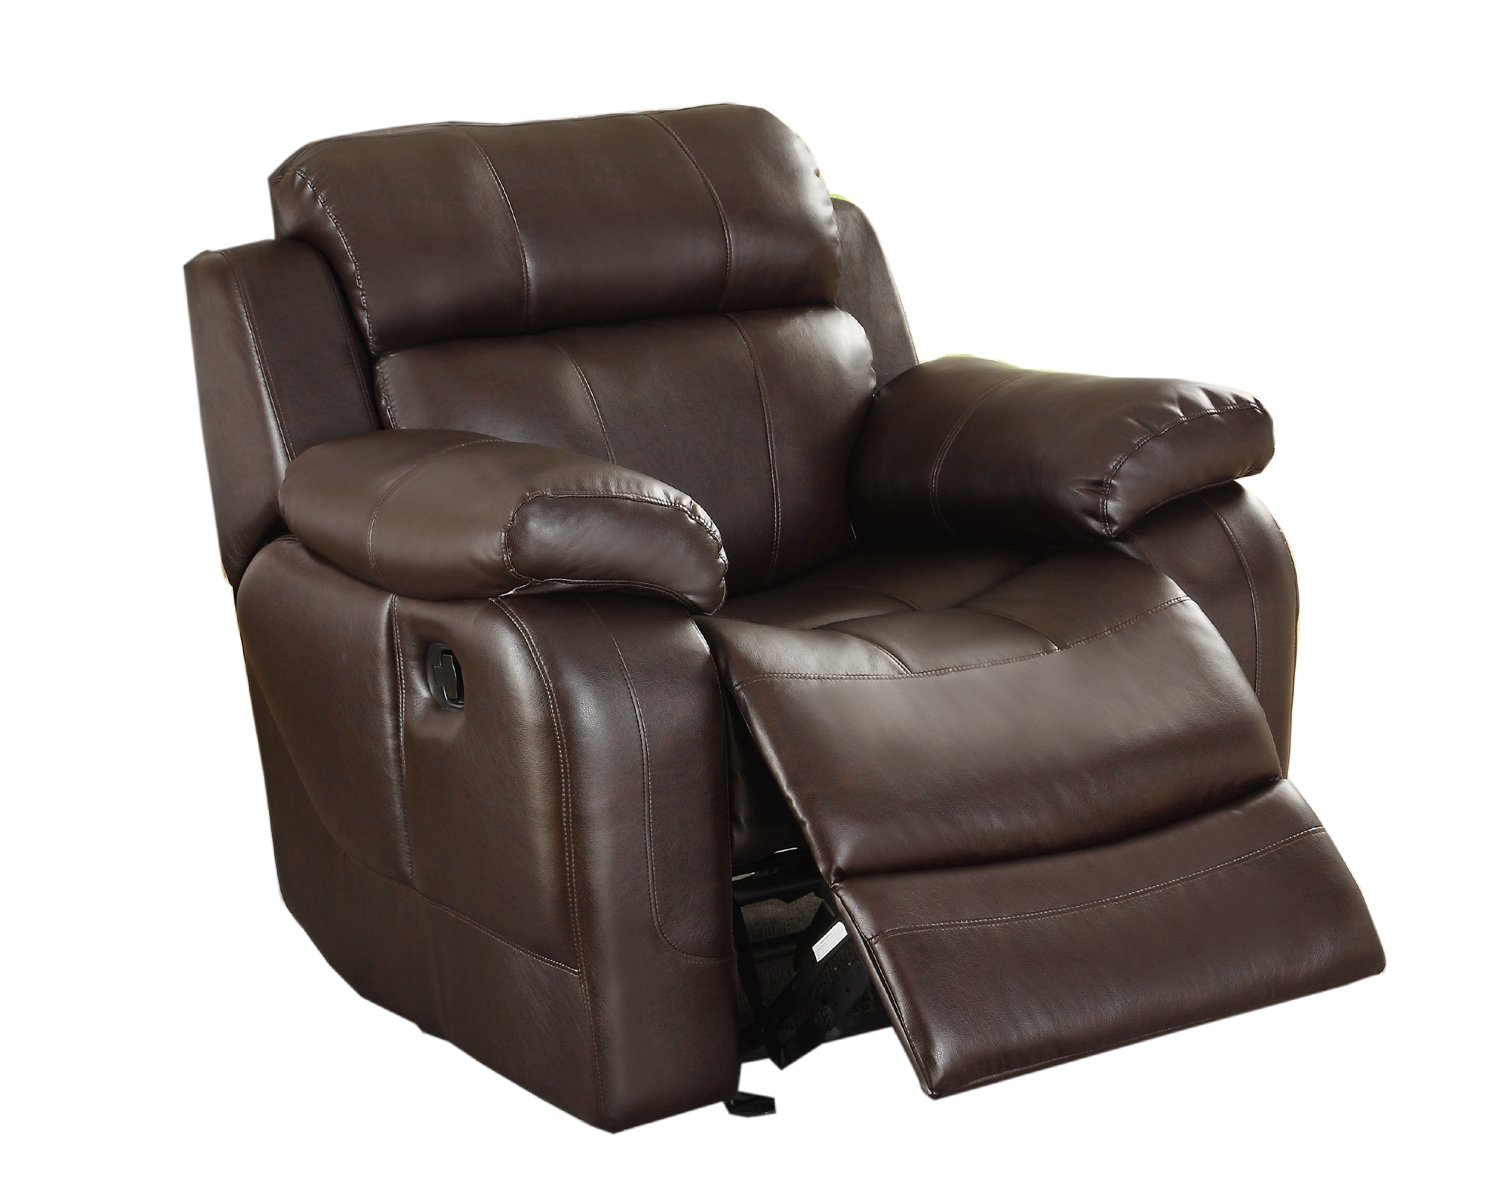 Homelegance Reclining Chair Review